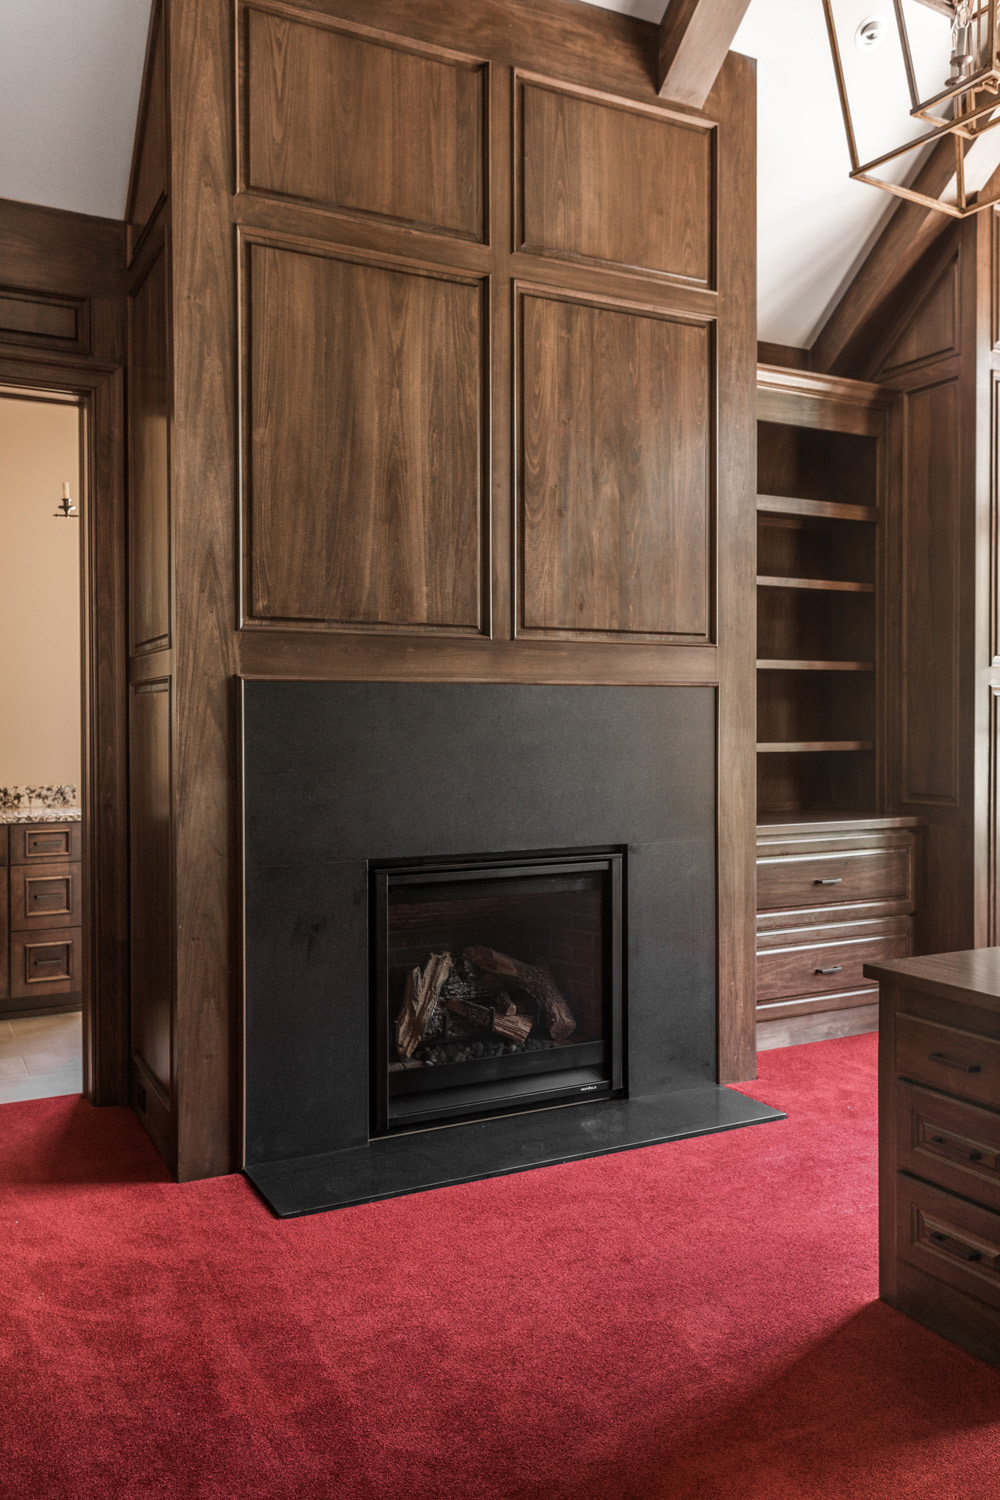 office fireplace inside custom home with red carpet and carpentry work